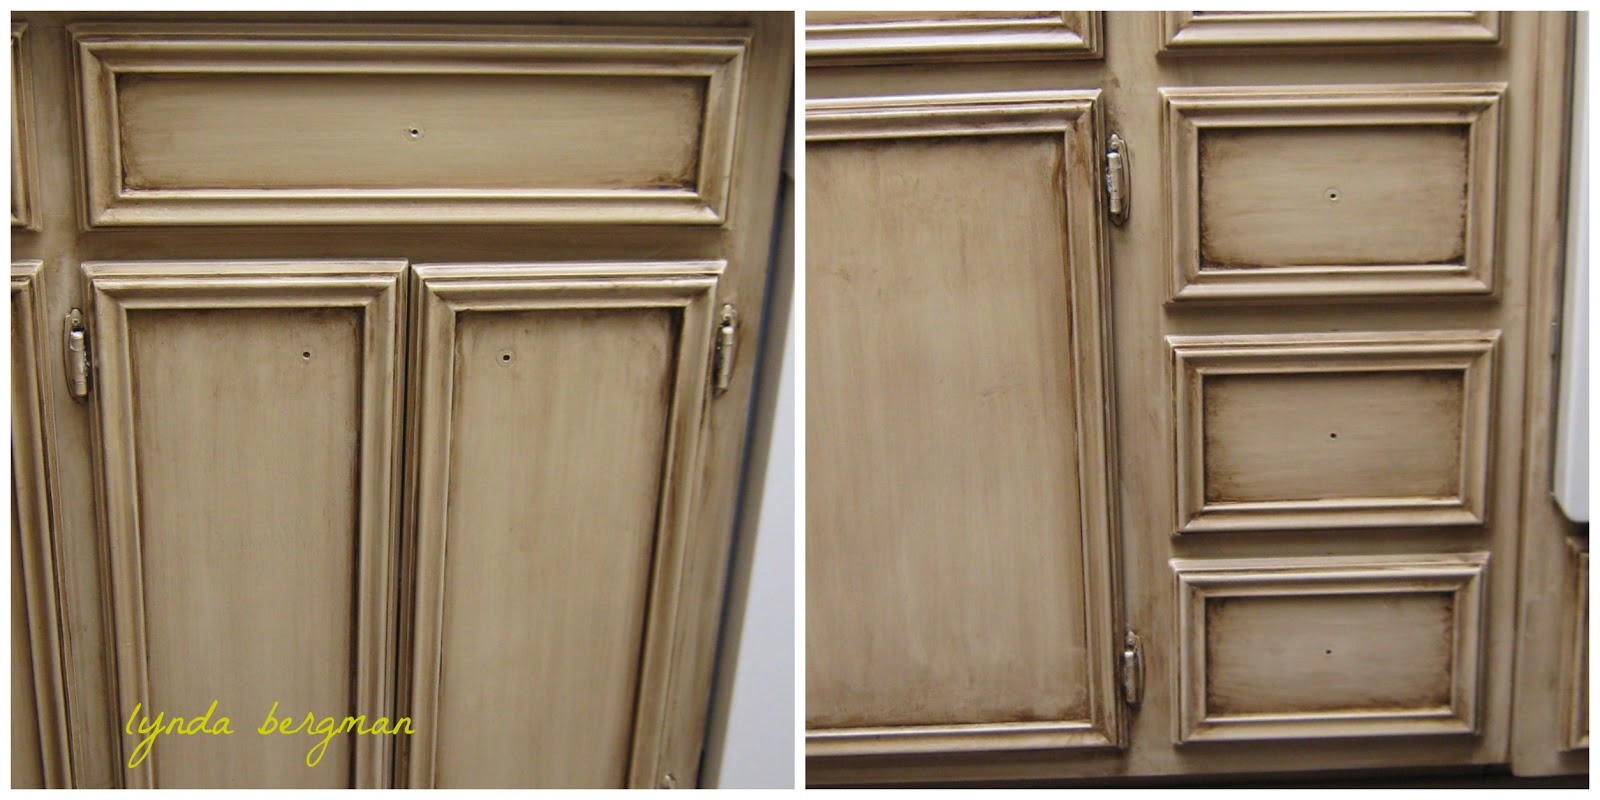 Lynda Bergman Decorative Artisan Painting A Special Aging Antiquing Finish On Old Kitchen Cabinets